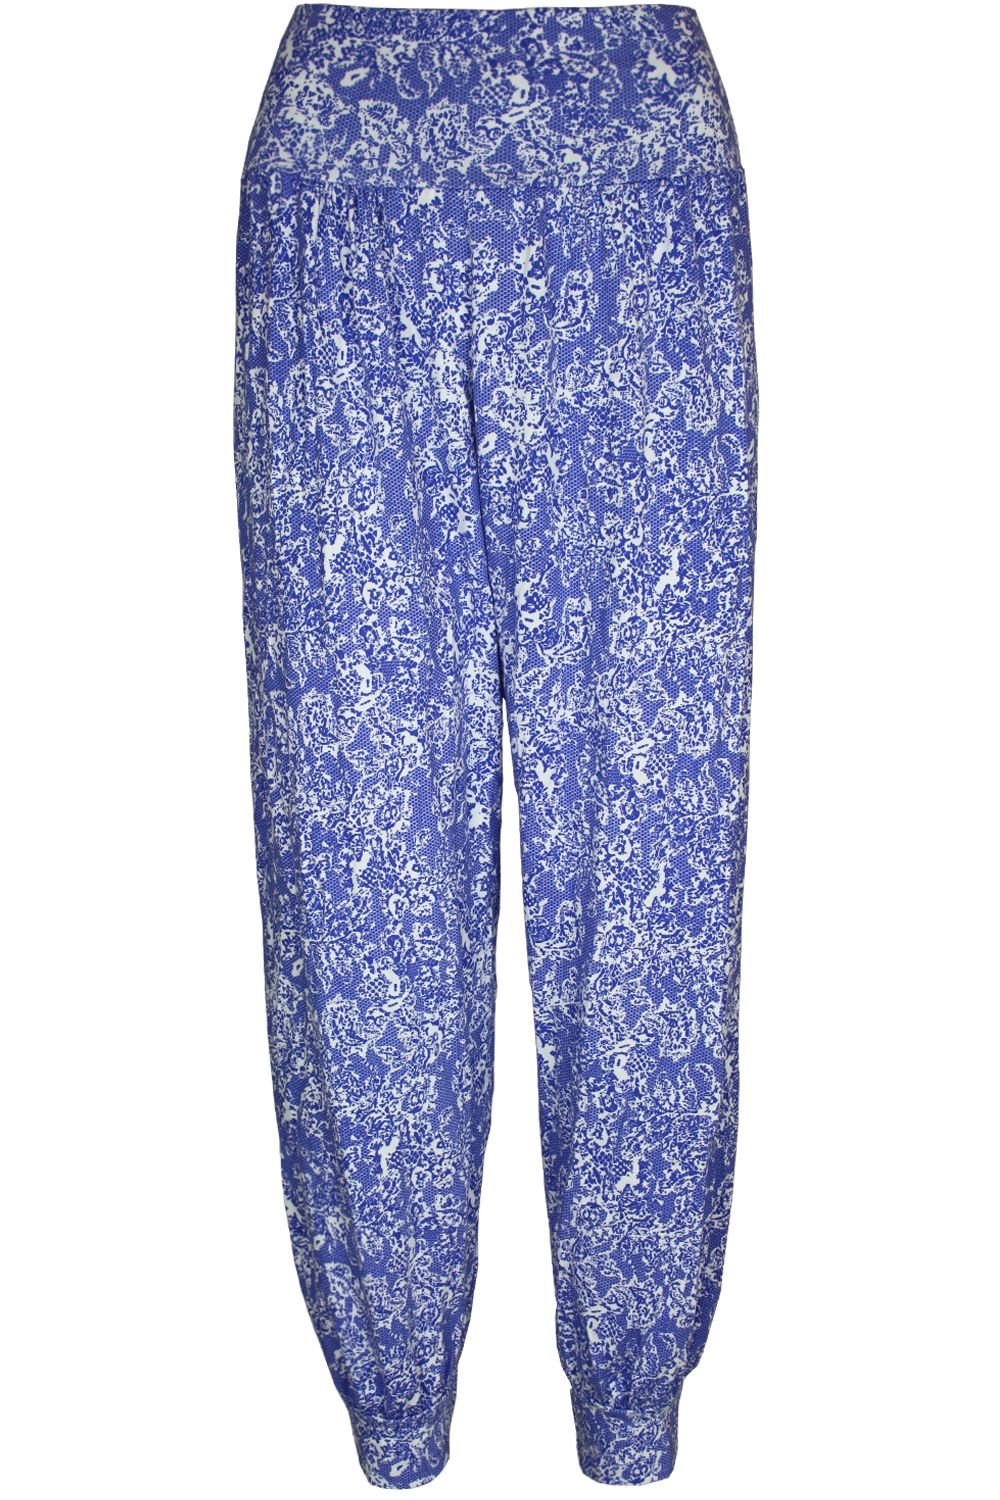 Elegant Palazzo Pants Are Very Much In Vogue Nowadays, Women Are Seen Wearing Solid And Printed Palazzo Pants It Is Perceived That Harem Pants And Palazzos Are One And The Same However, The Key Difference Between The Two Is That